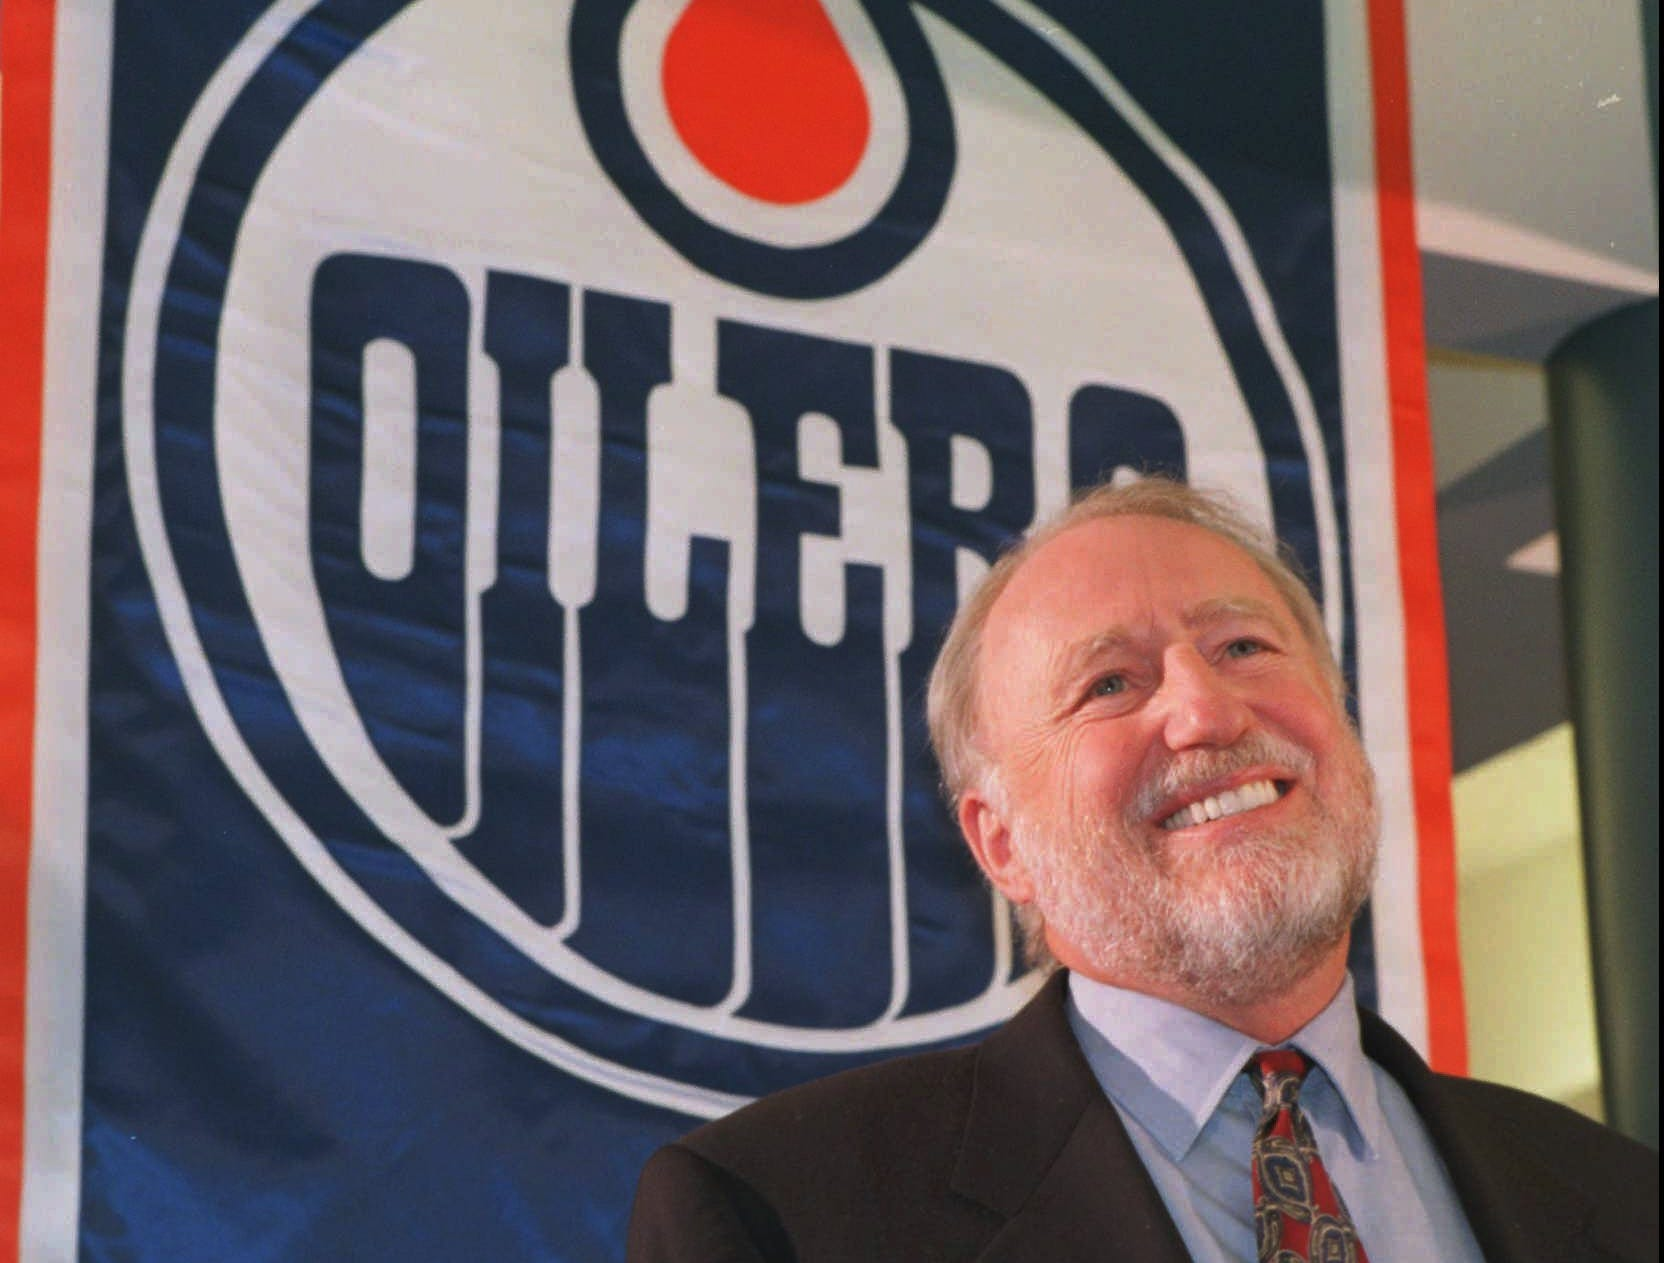 Edmonton Oilers owner Peter Pocklington was behind the trade, which sent Gretzky, Mike Krushelnyski and Marty McSorley to the Kings for Jimmy Carson, Martin Gelinas, three first-round picks and $15 million in cash.